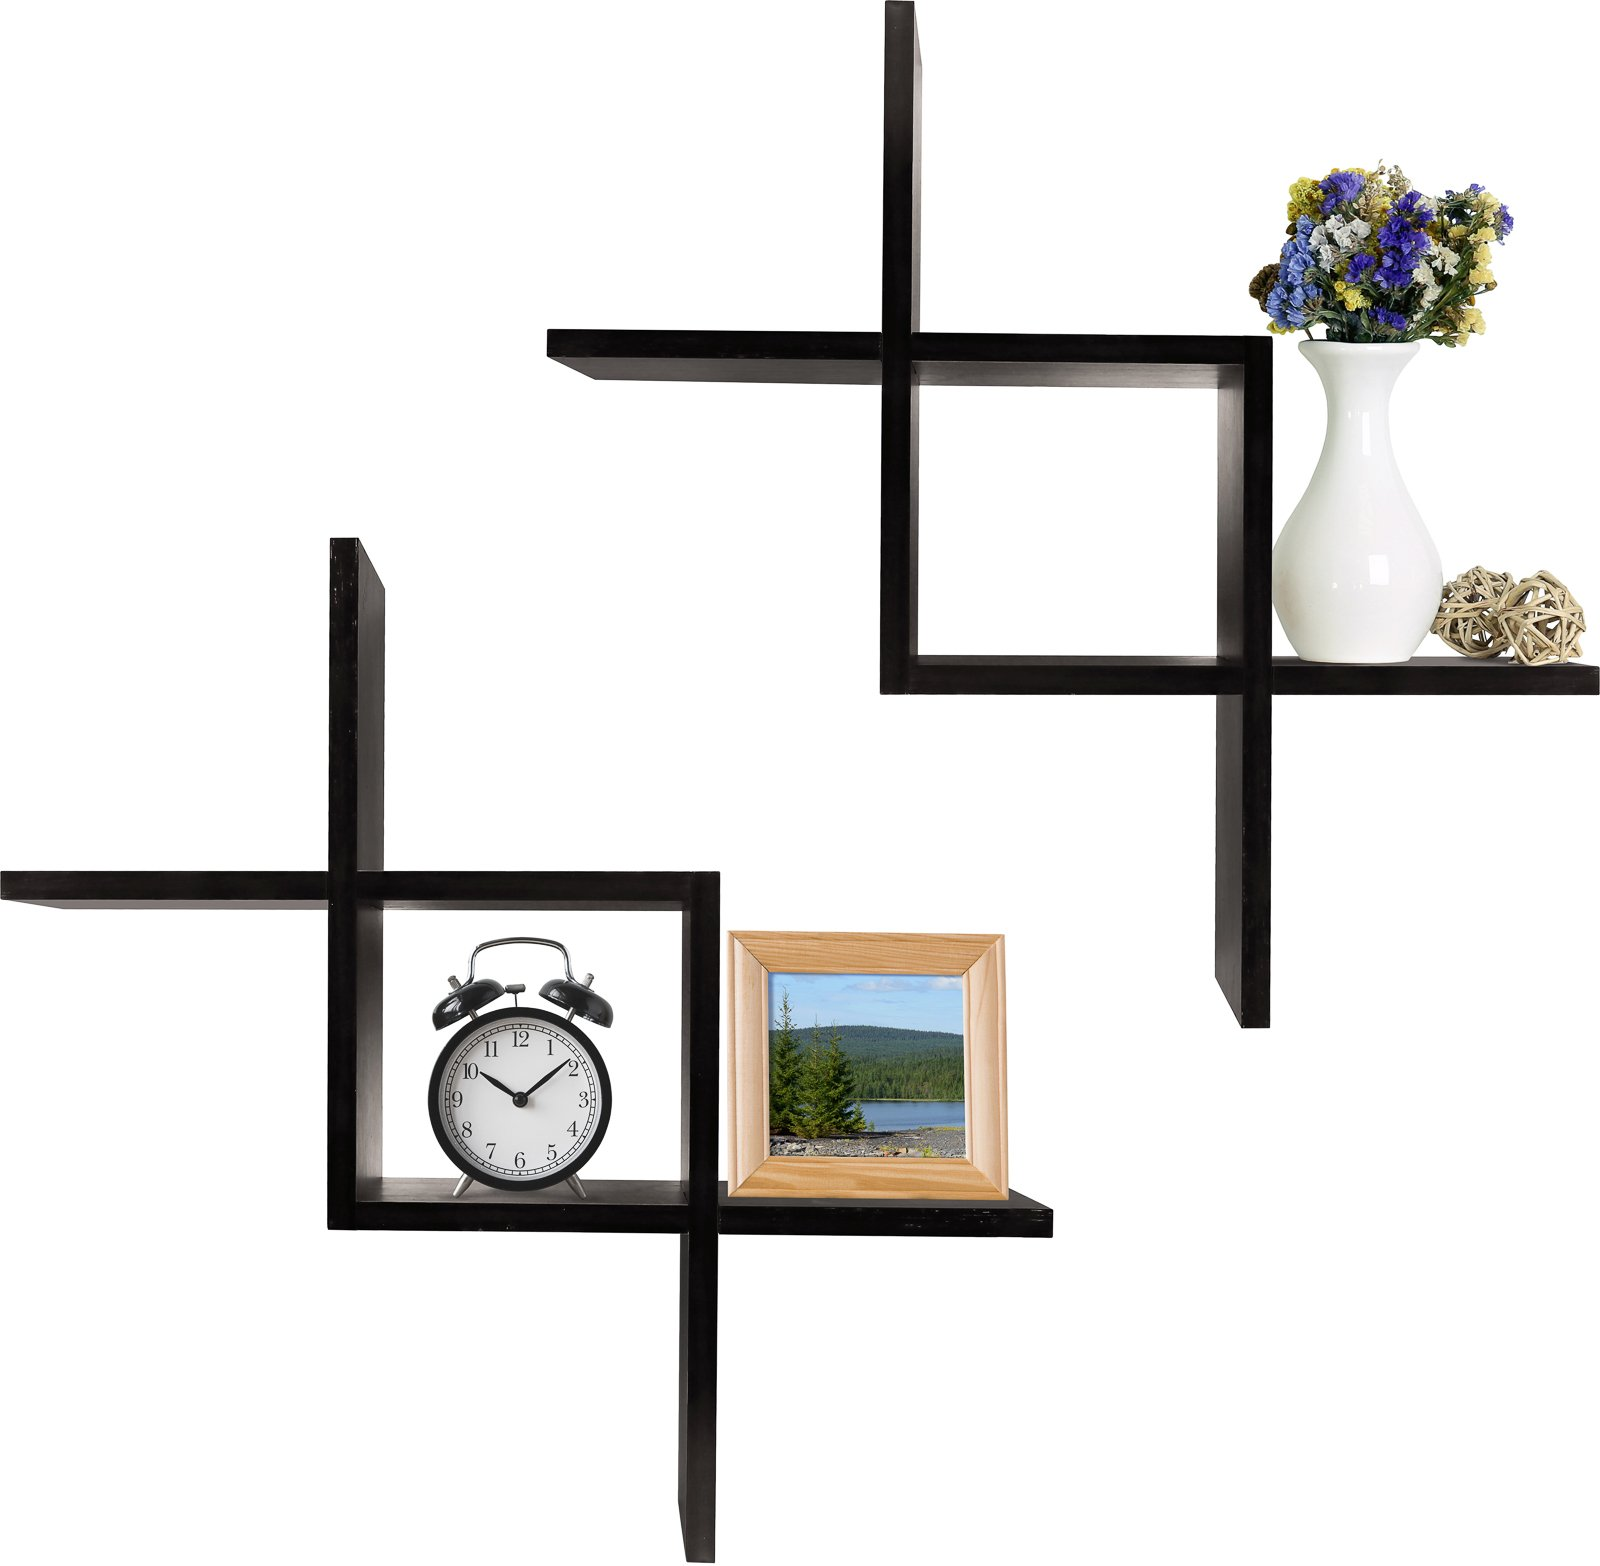 Greenco Criss Cross Intersecting Wall Mounted Floating Shelves- Espresso Finish by Greenco